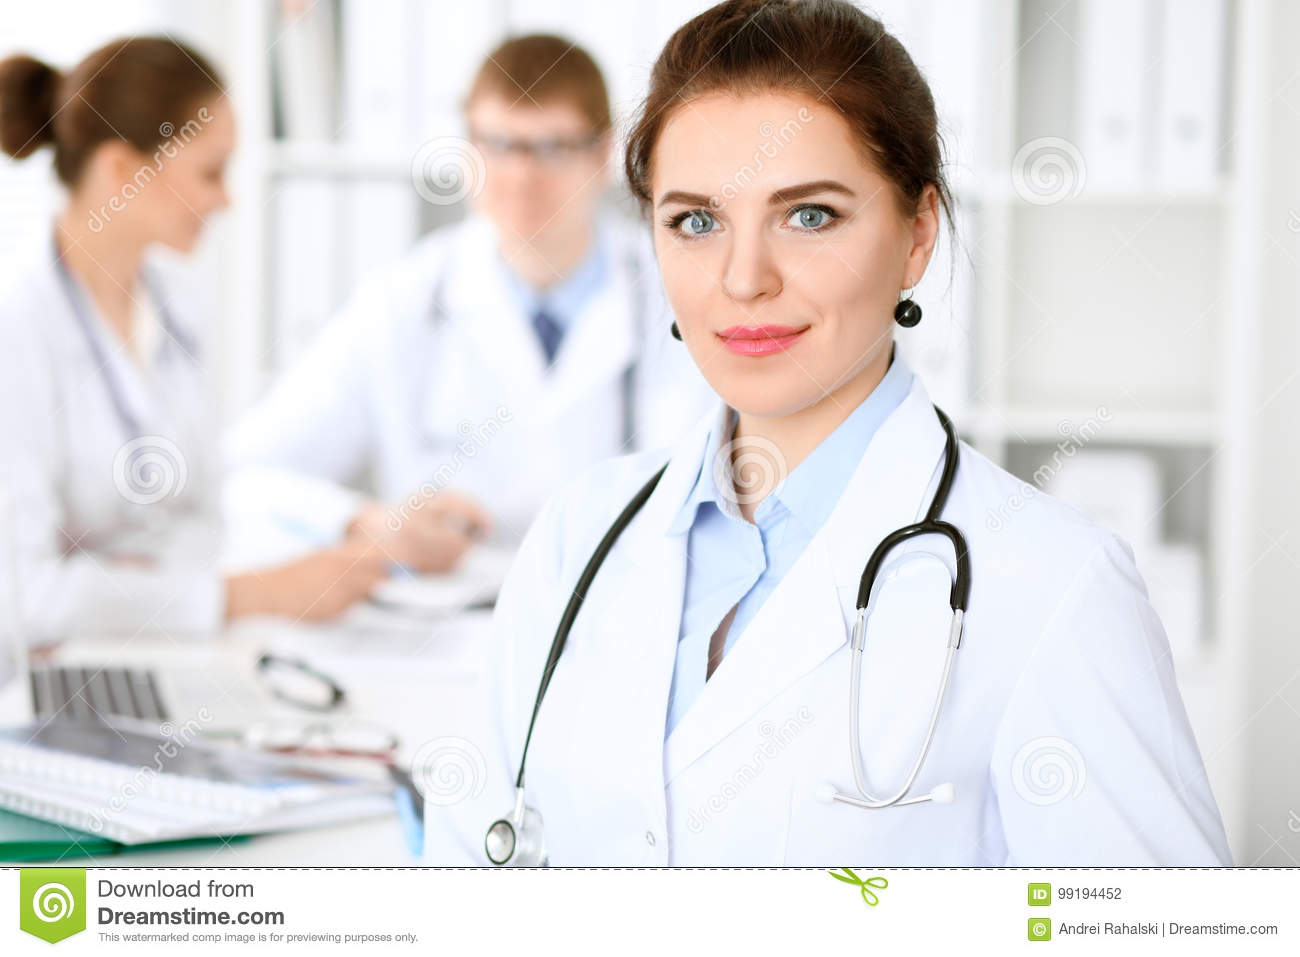 Happy doctor woman with medical staff at the hospital sitting at the table